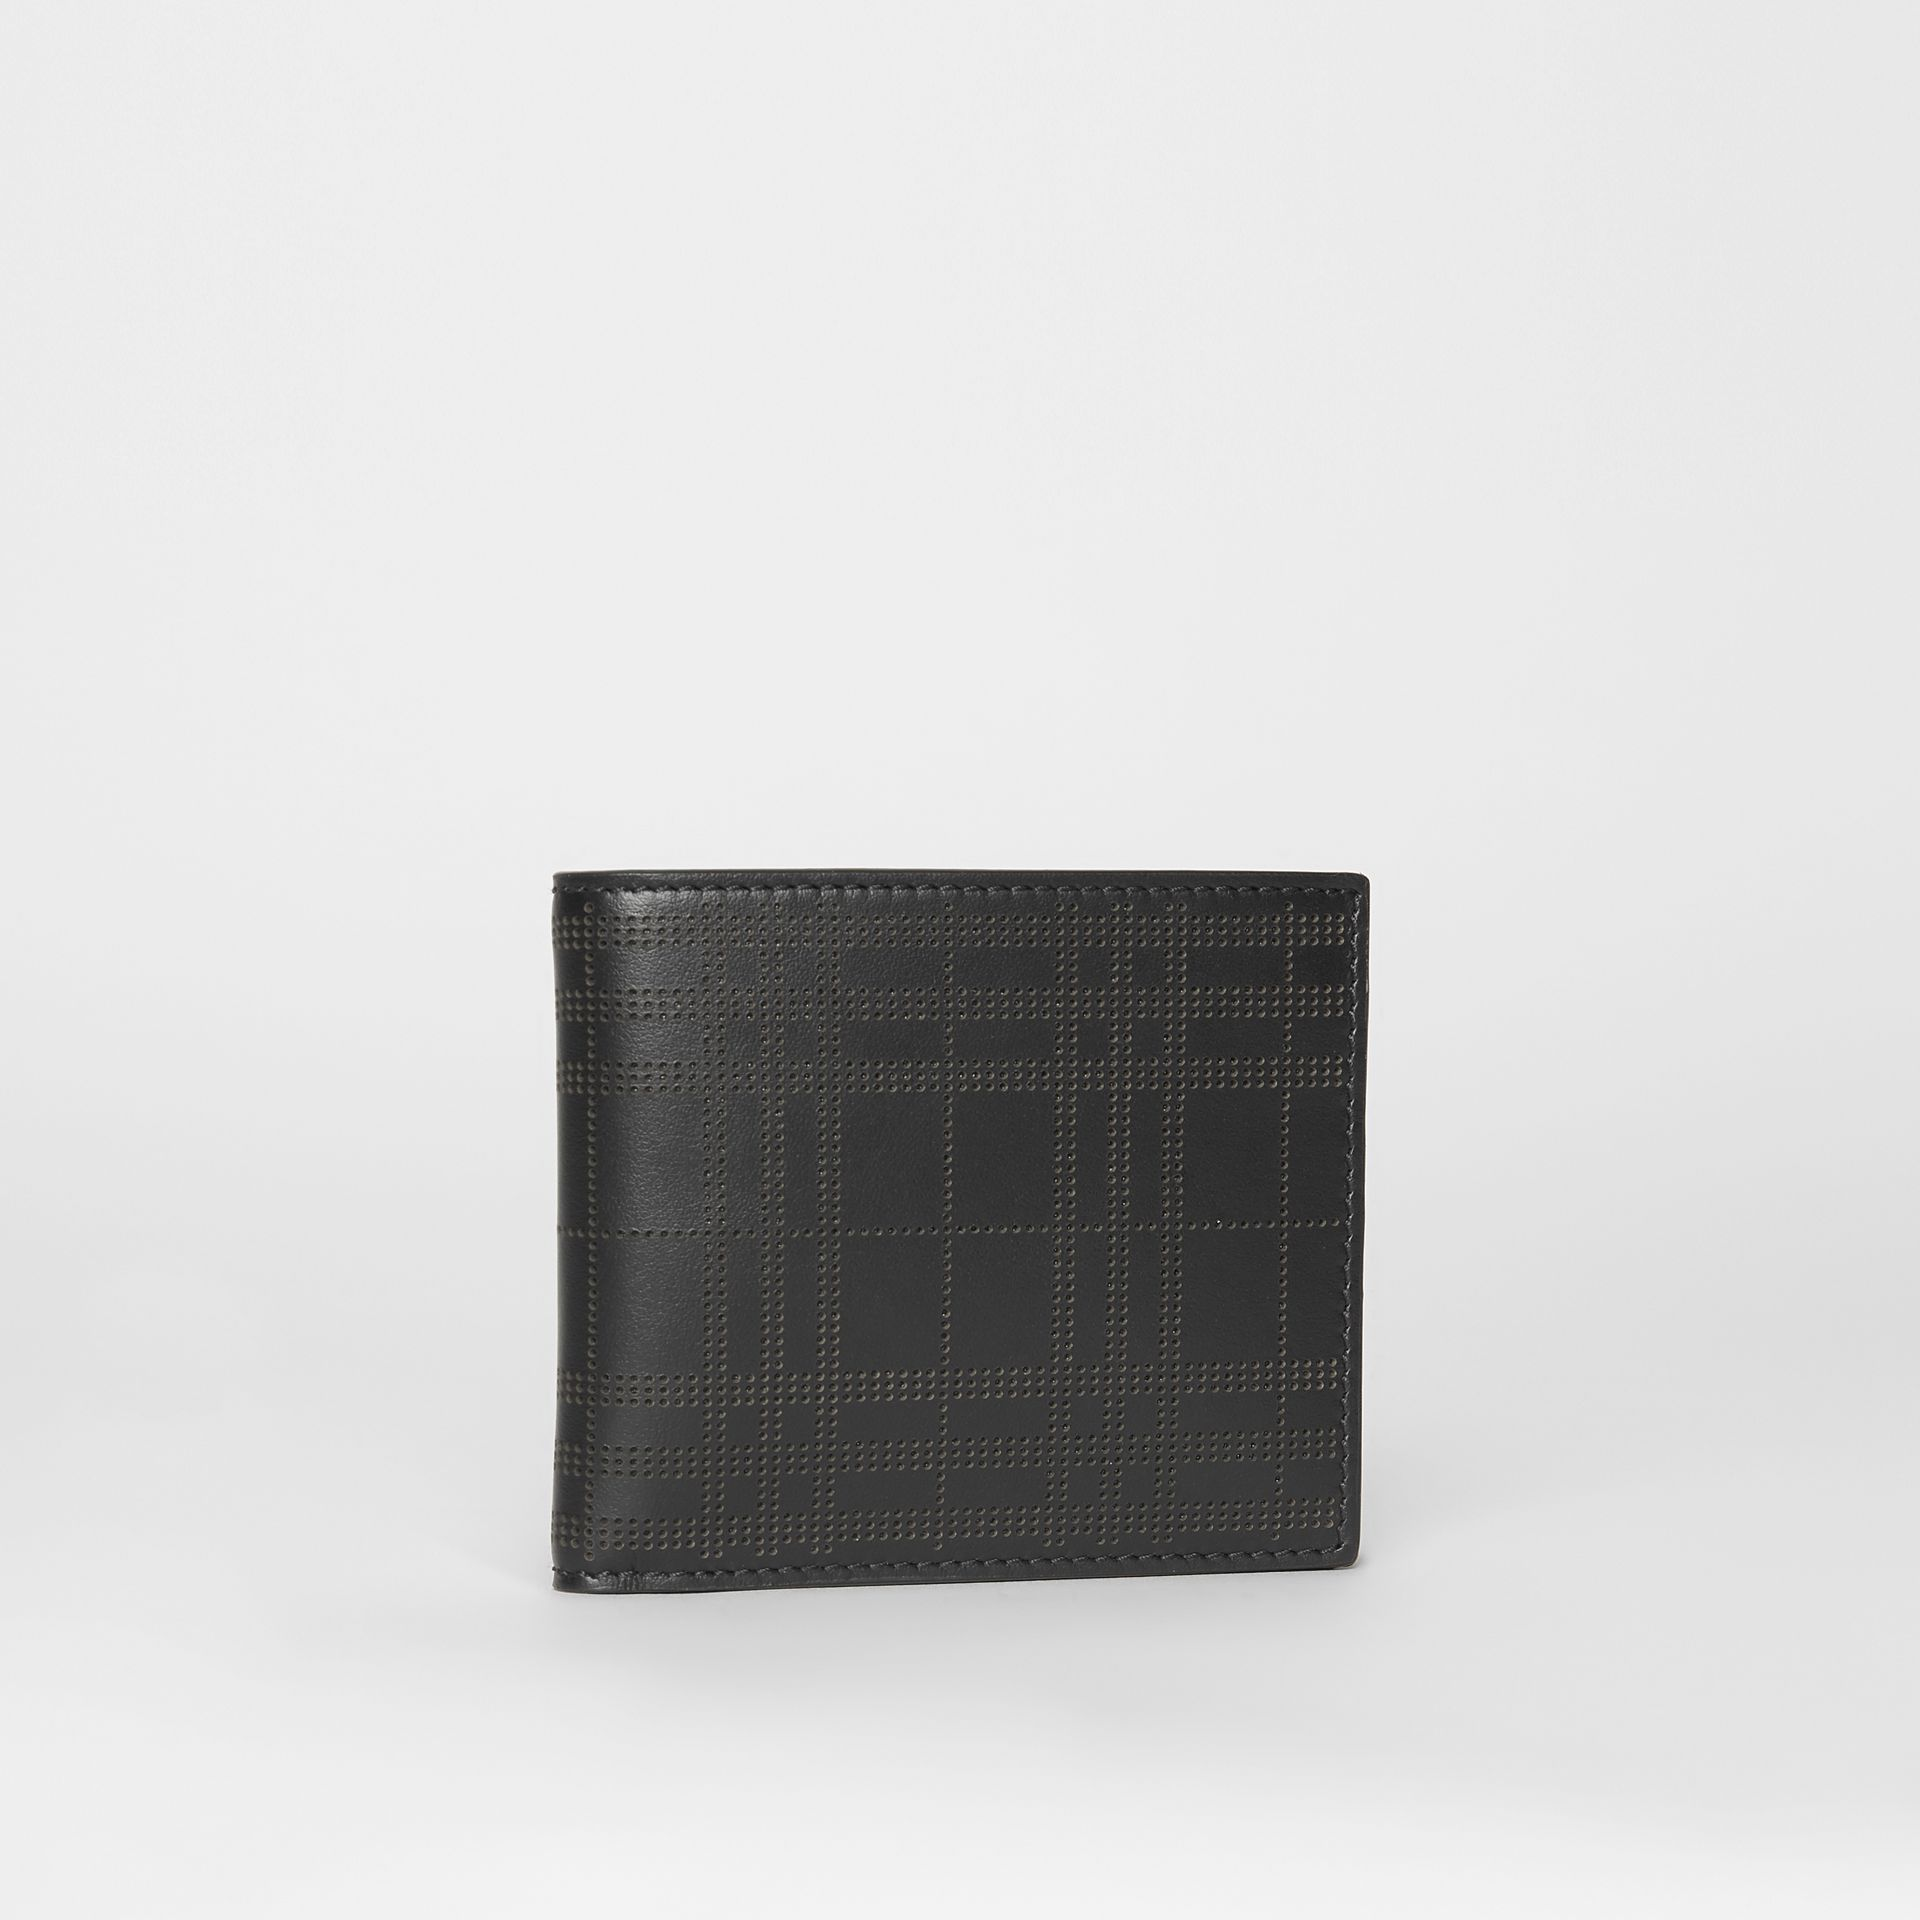 Perforated Check Leather International Bifold Wallet in Black - Men | Burberry - gallery image 3